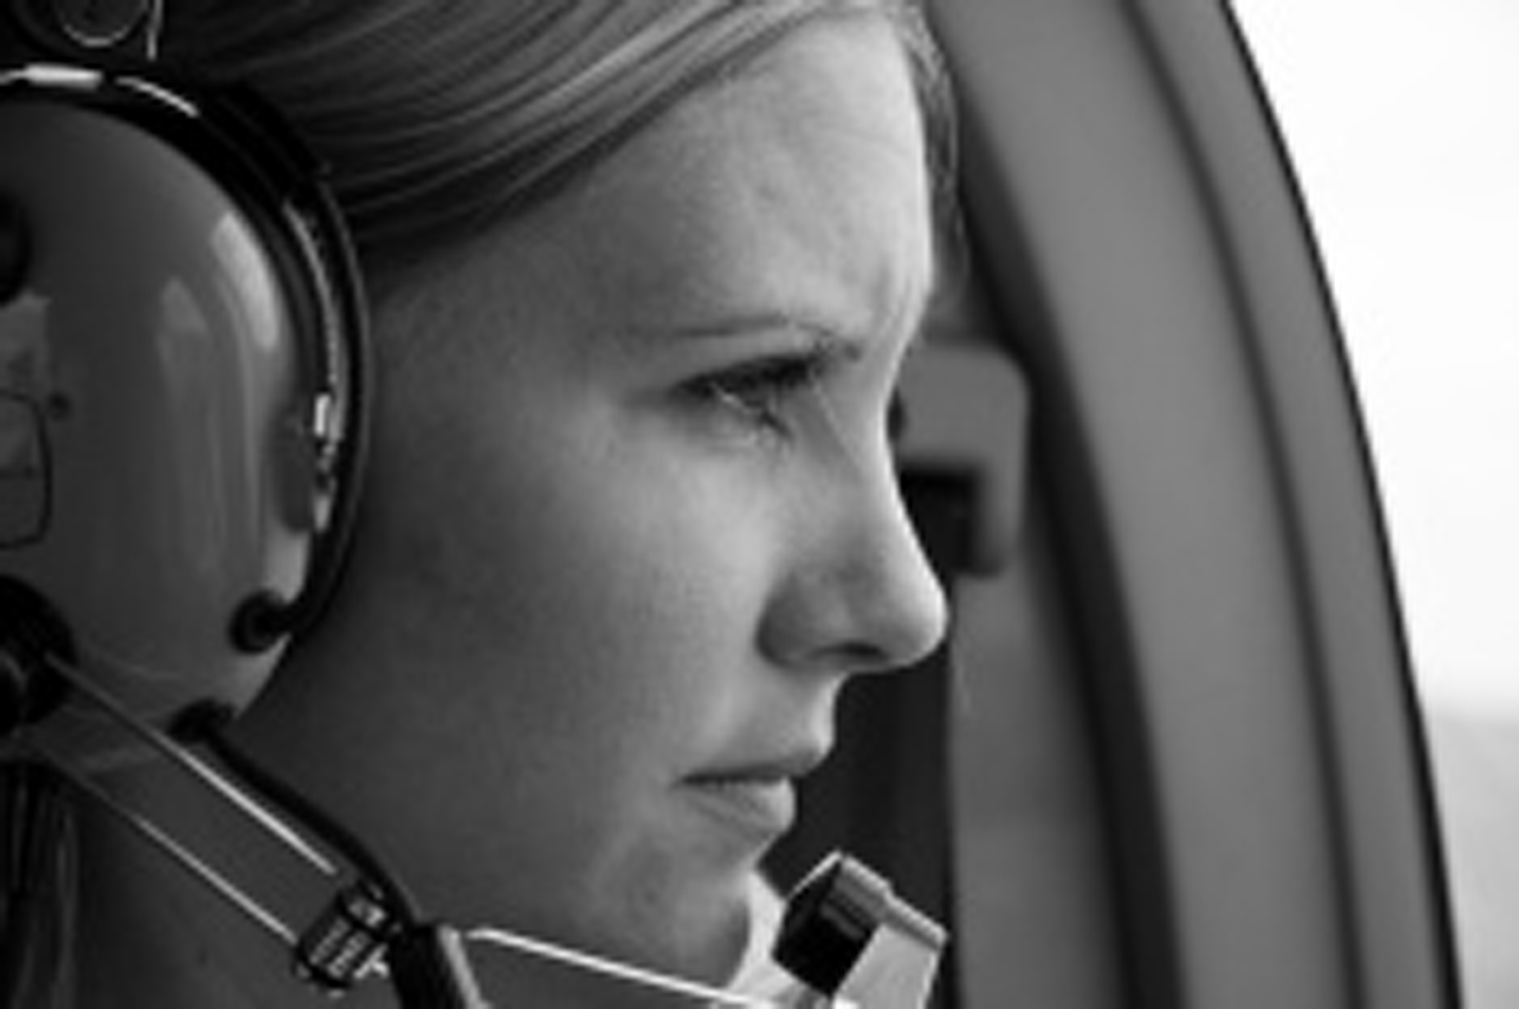 daytonaaviationacademy-com-airplane-girl.jpg